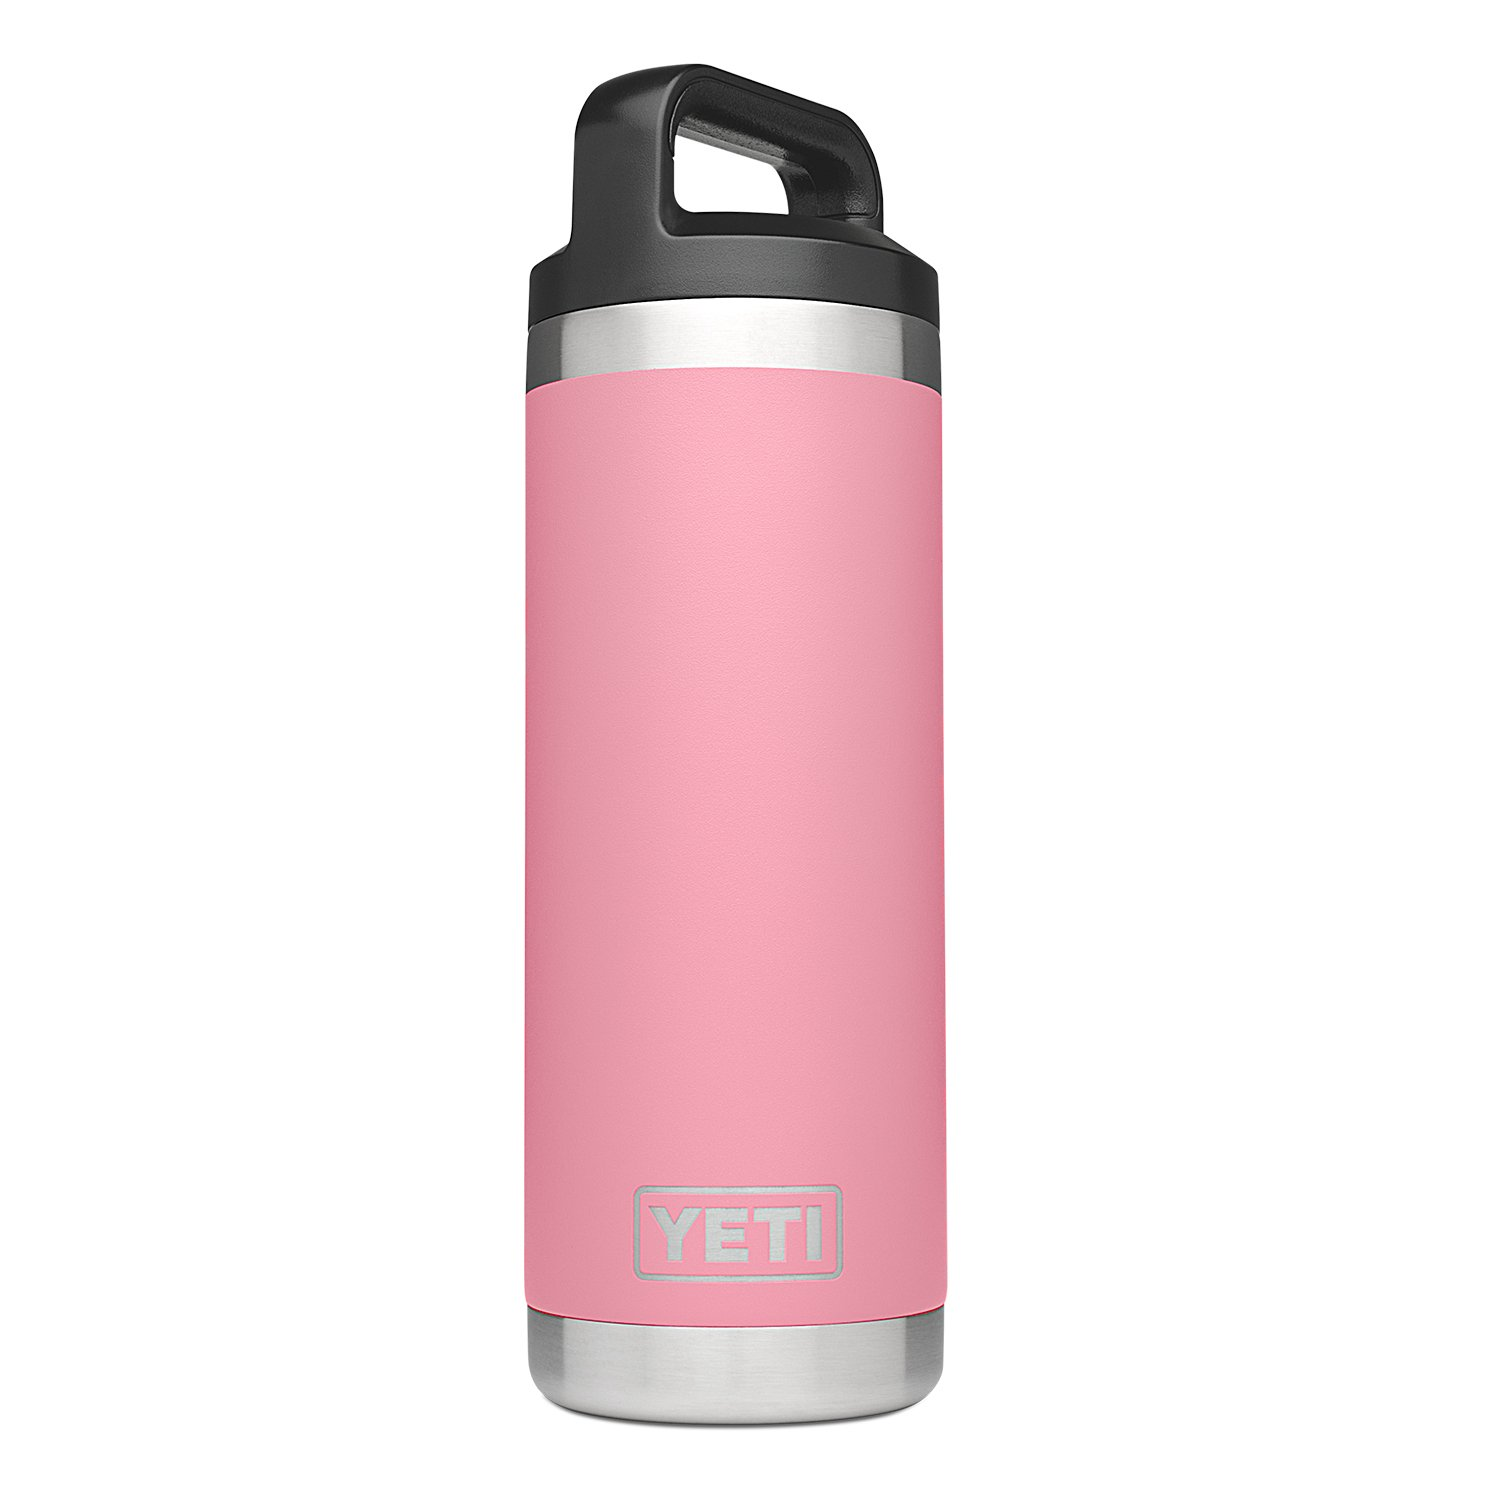 YETI Rambler 18oz Vacuum Insulated Stainless Steel Bottle with Cap (Pink)